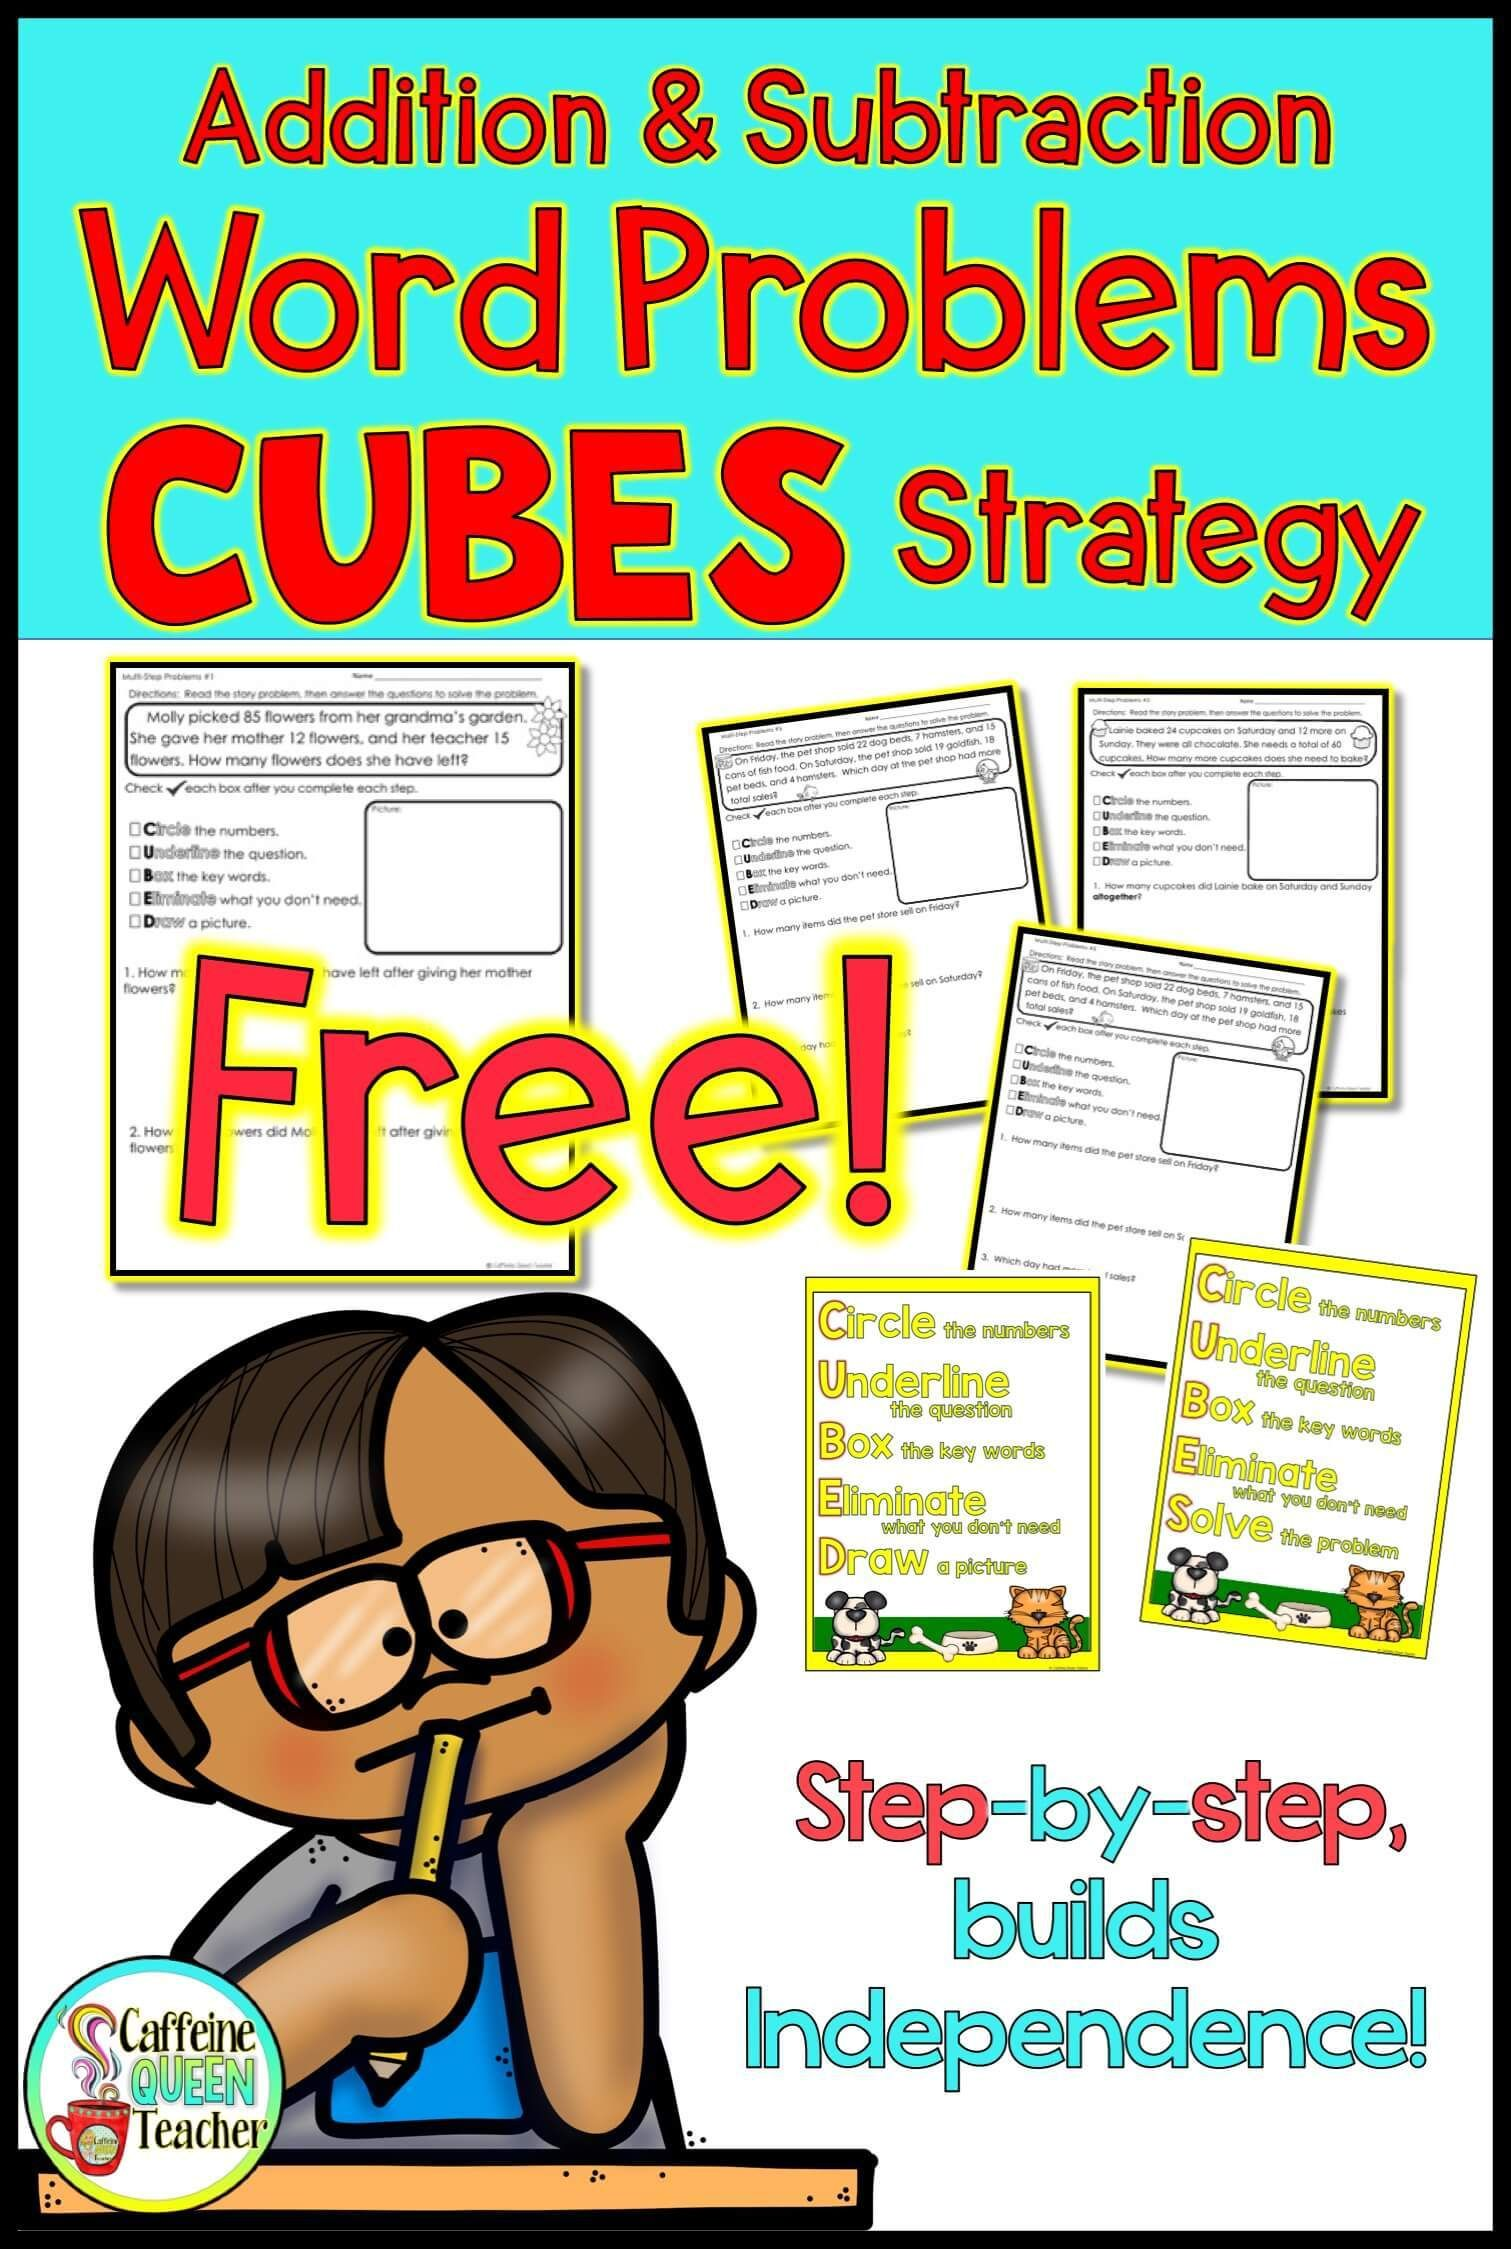 Free Worksheet Addition And Subtraction Word Problems Strategy Caffeine Queen Teacher Subtraction Word Problems Word Problem Strategies Word Problem Worksheets Two step addition and subtraction word